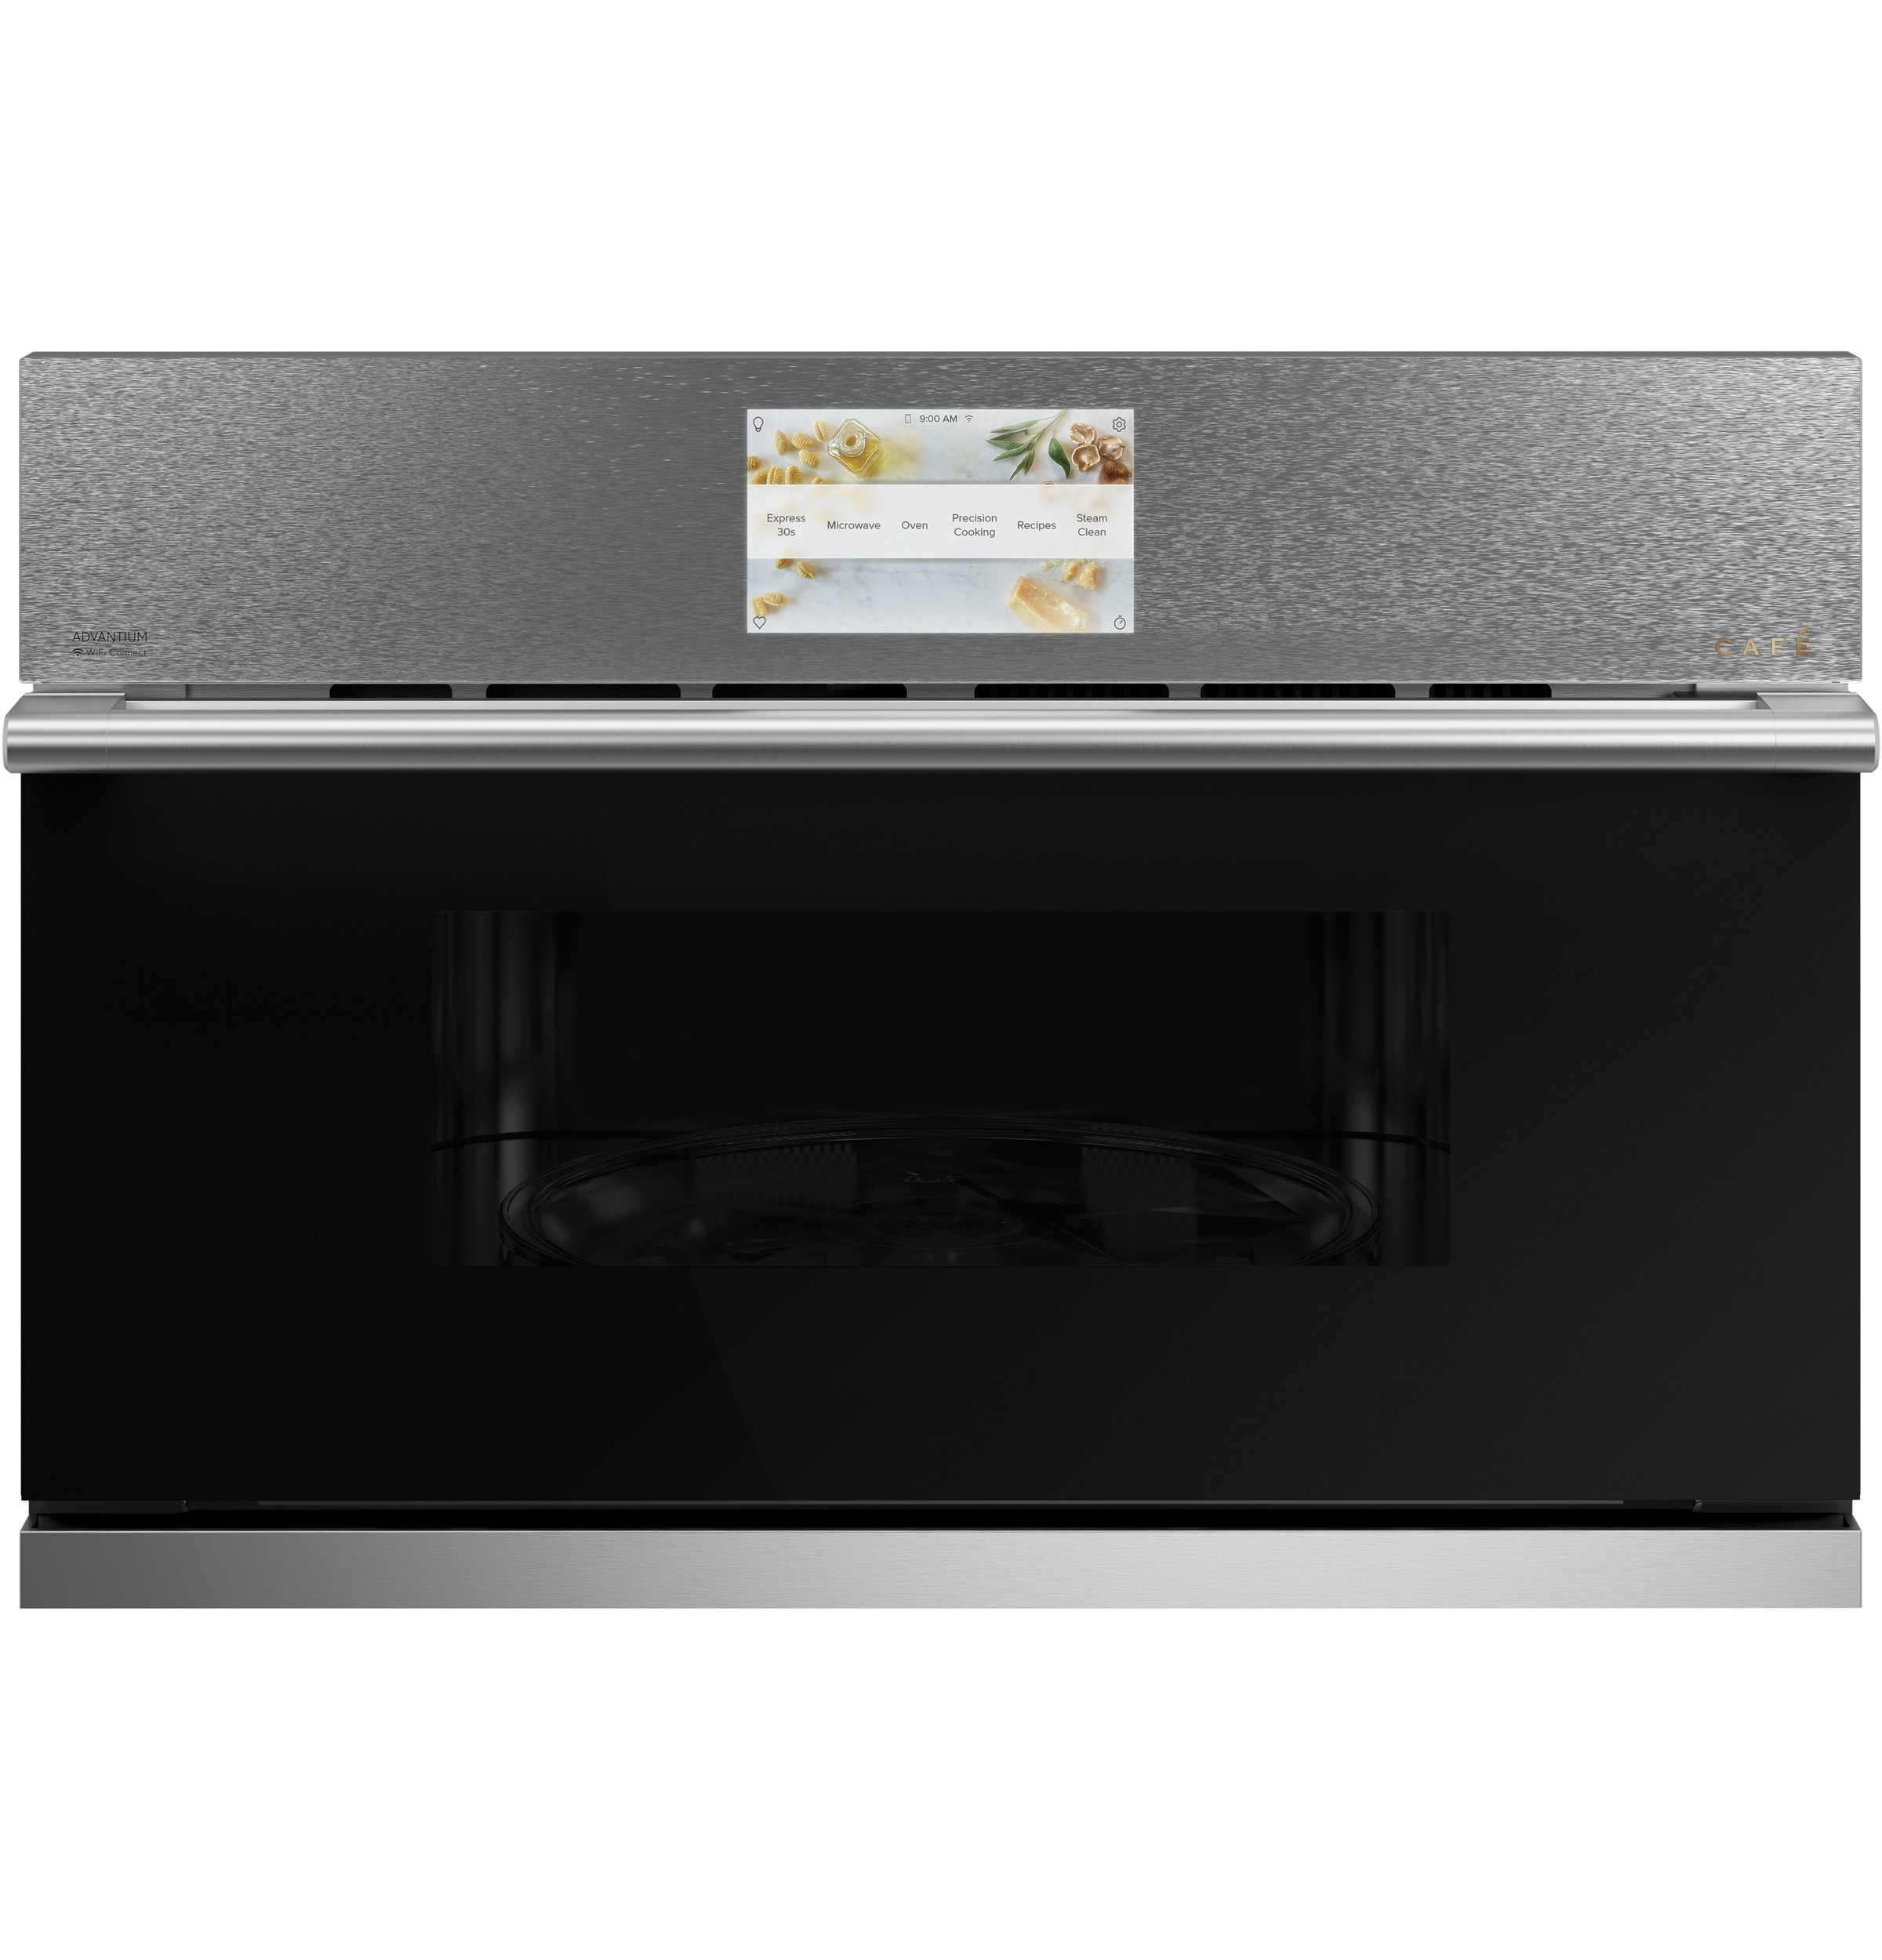 "Cafe Cafe™ 30"" Smart Five in One Wall Oven with 240V Advantium® Technology"